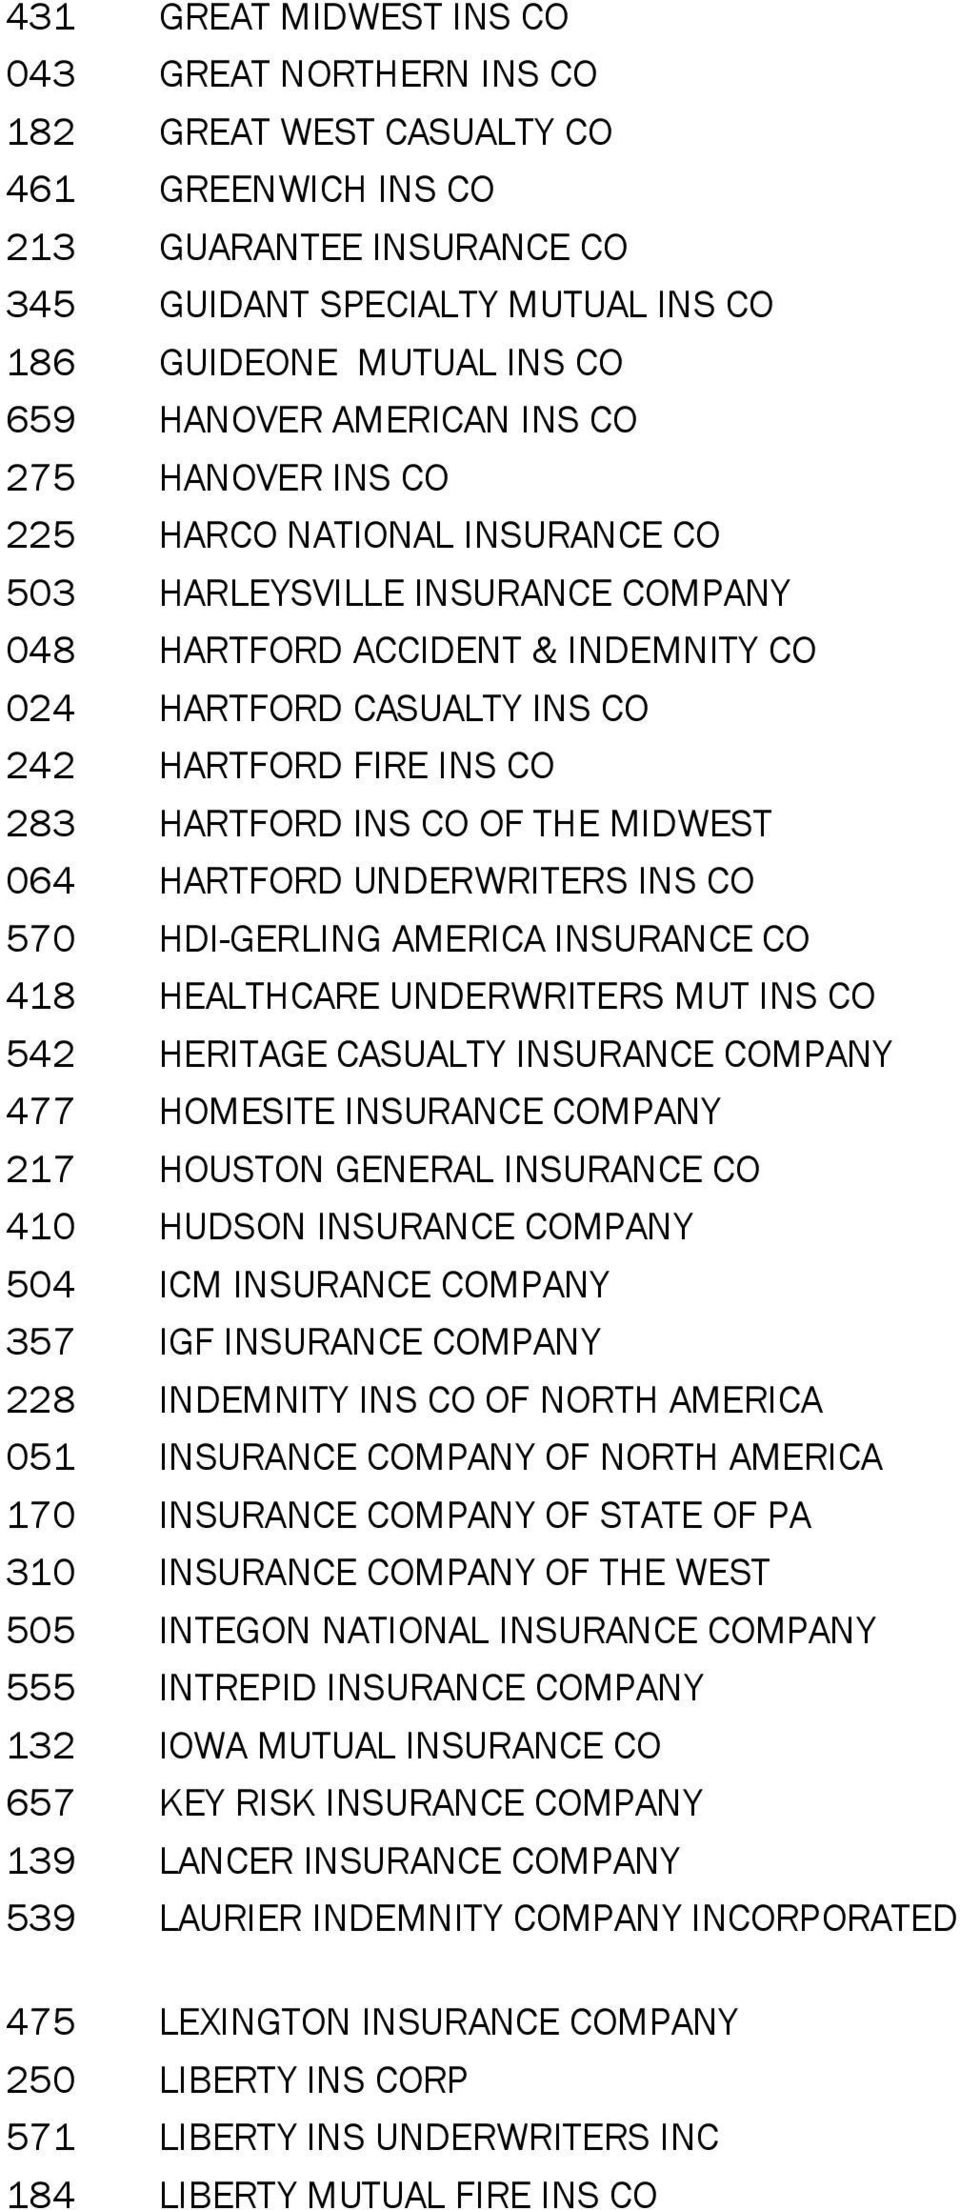 HARTFORD INS CO OF THE MIDWEST 064 HARTFORD UNDERWRITERS INS CO 570 HDI-GERLING AMERICA INSURANCE CO 418 HEALTHCARE UNDERWRITERS MUT INS CO 542 HERITAGE CASUALTY INSURANCE 477 HOMESITE INSURANCE 217